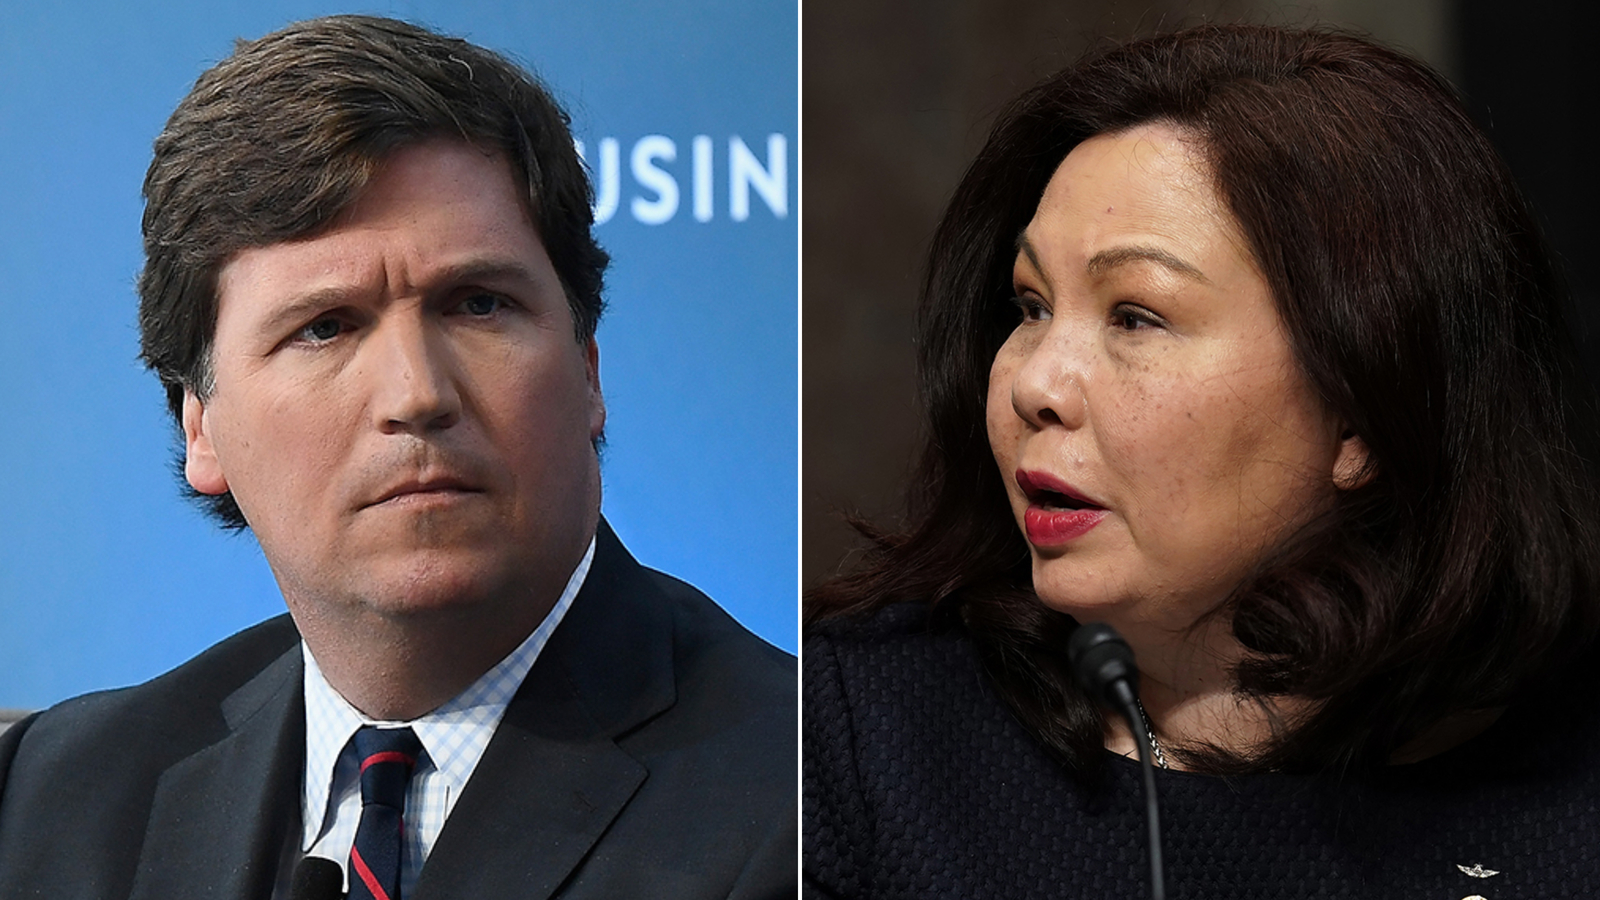 Tammy Duckworth hits back at Trump and Carlson: 'These titanium legs don't buckle'